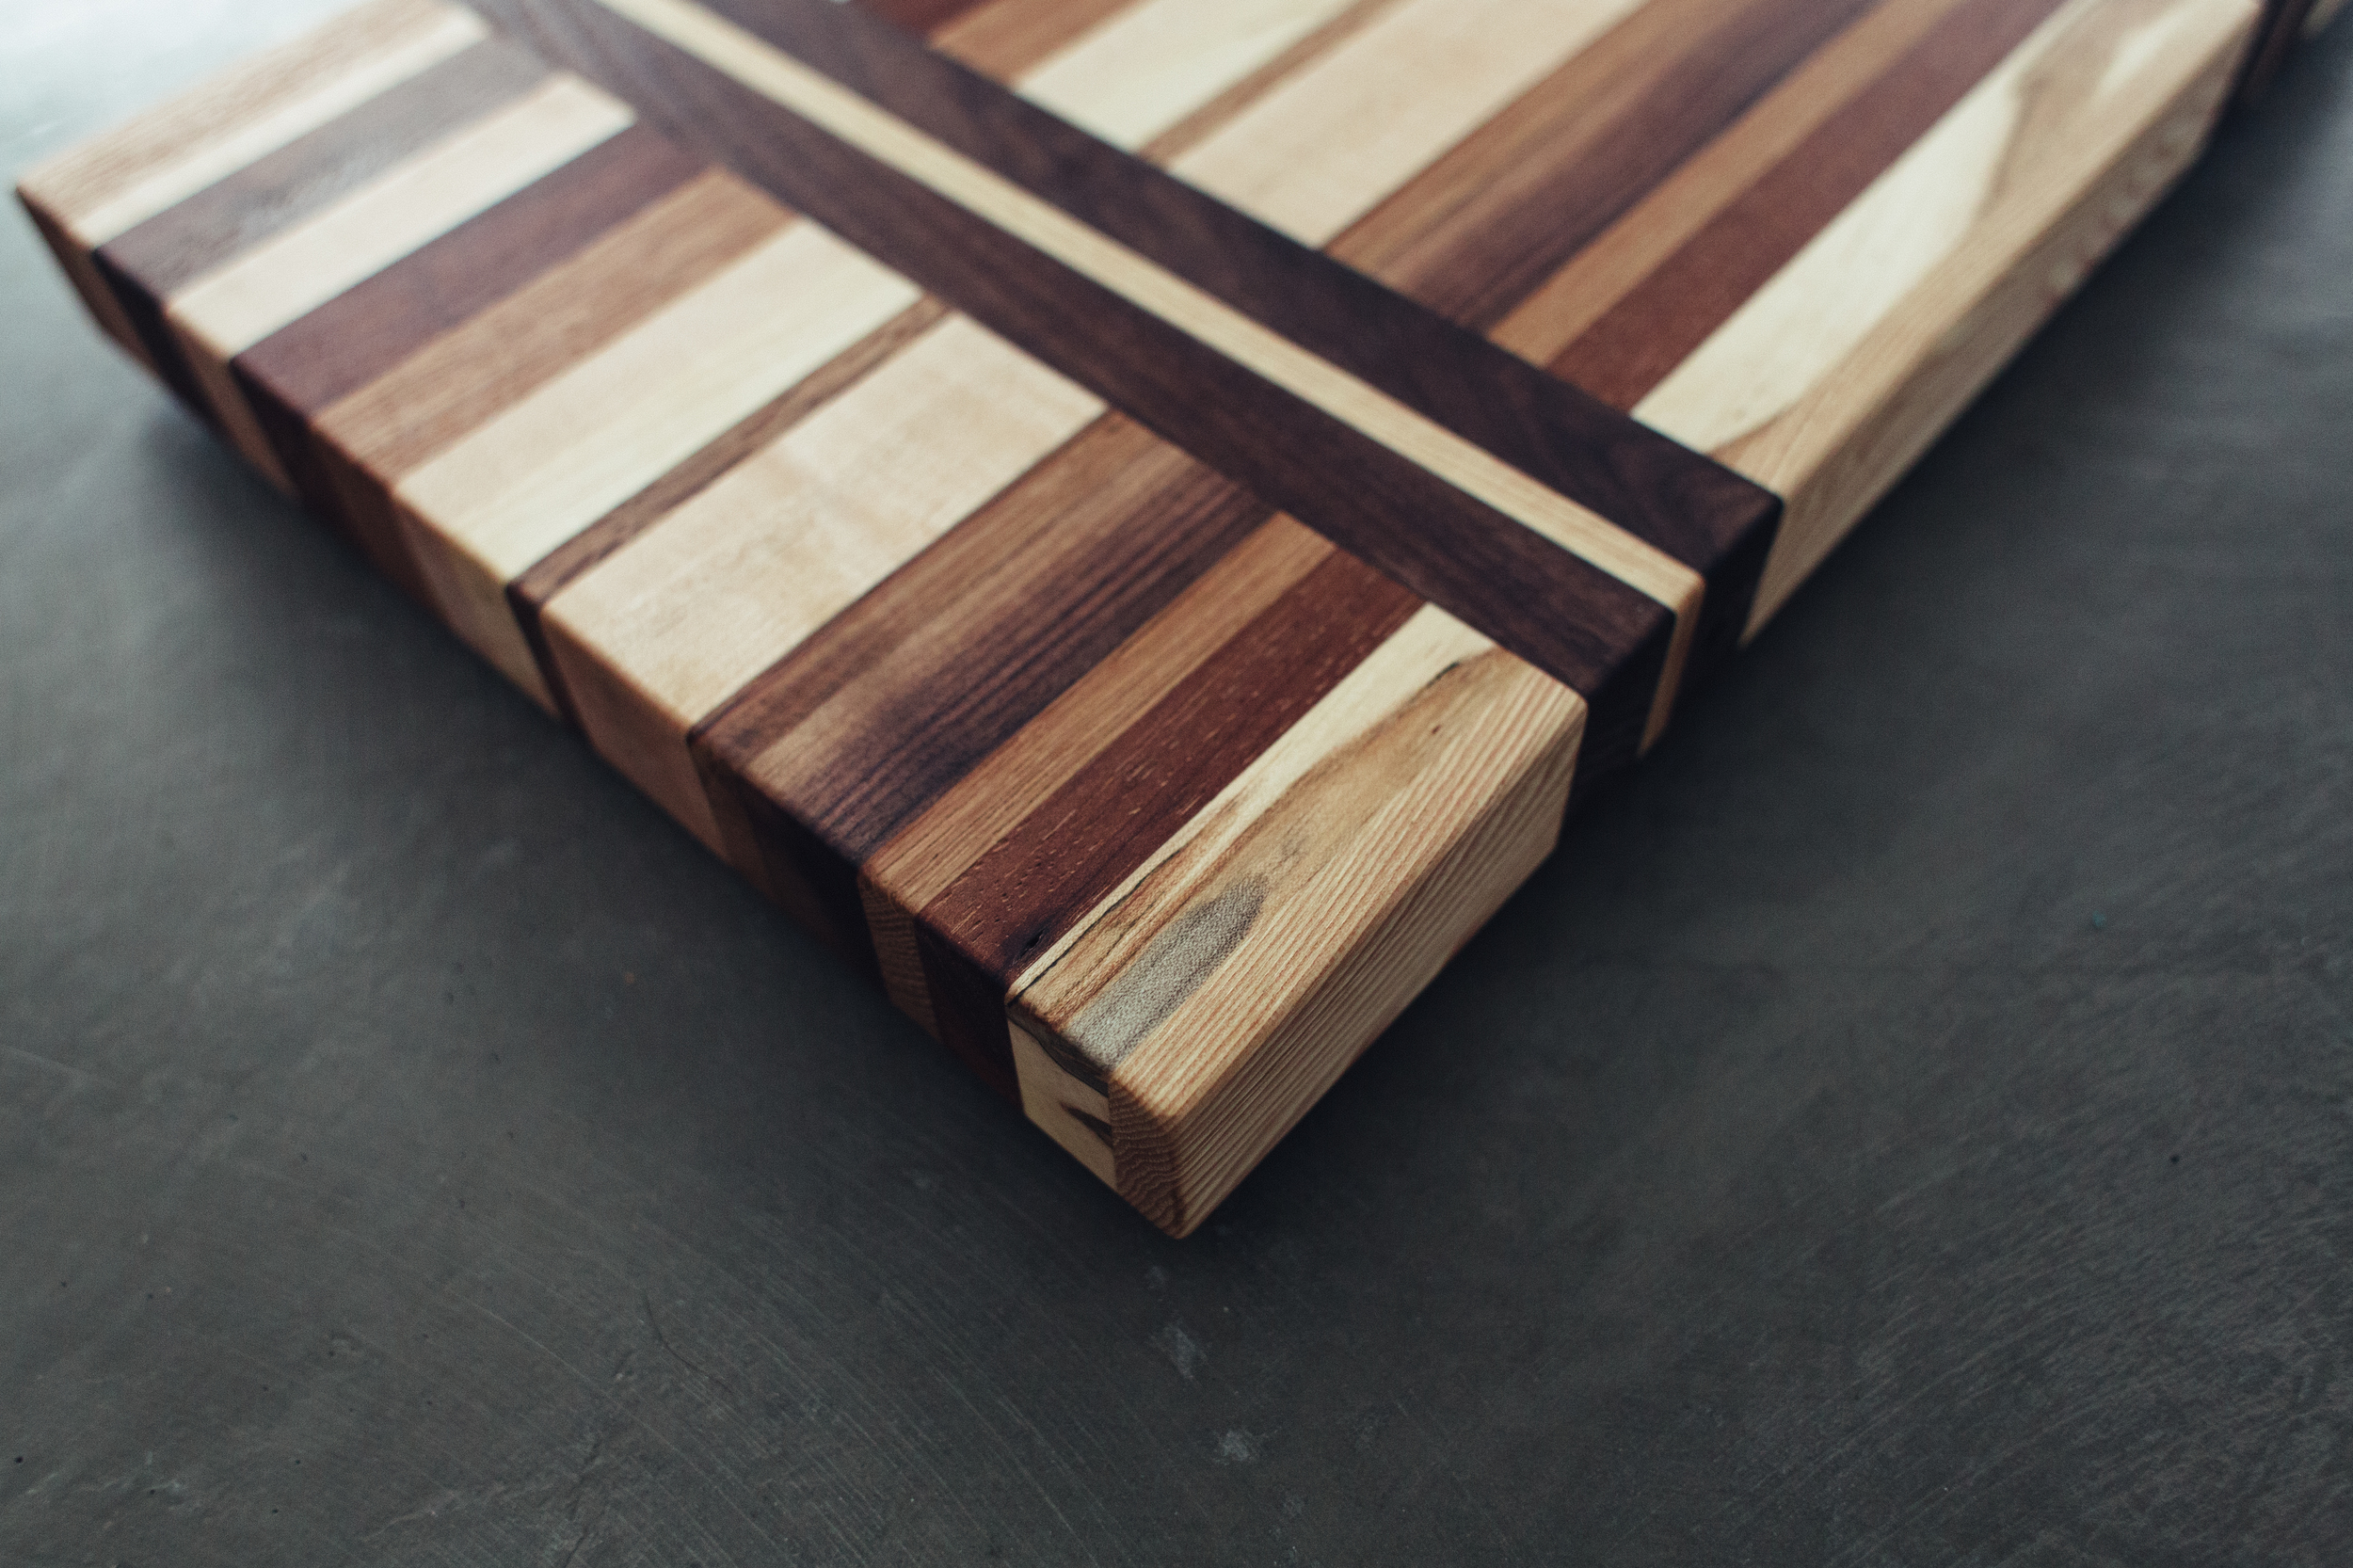 custom cutting board - Ellen-7.jpg